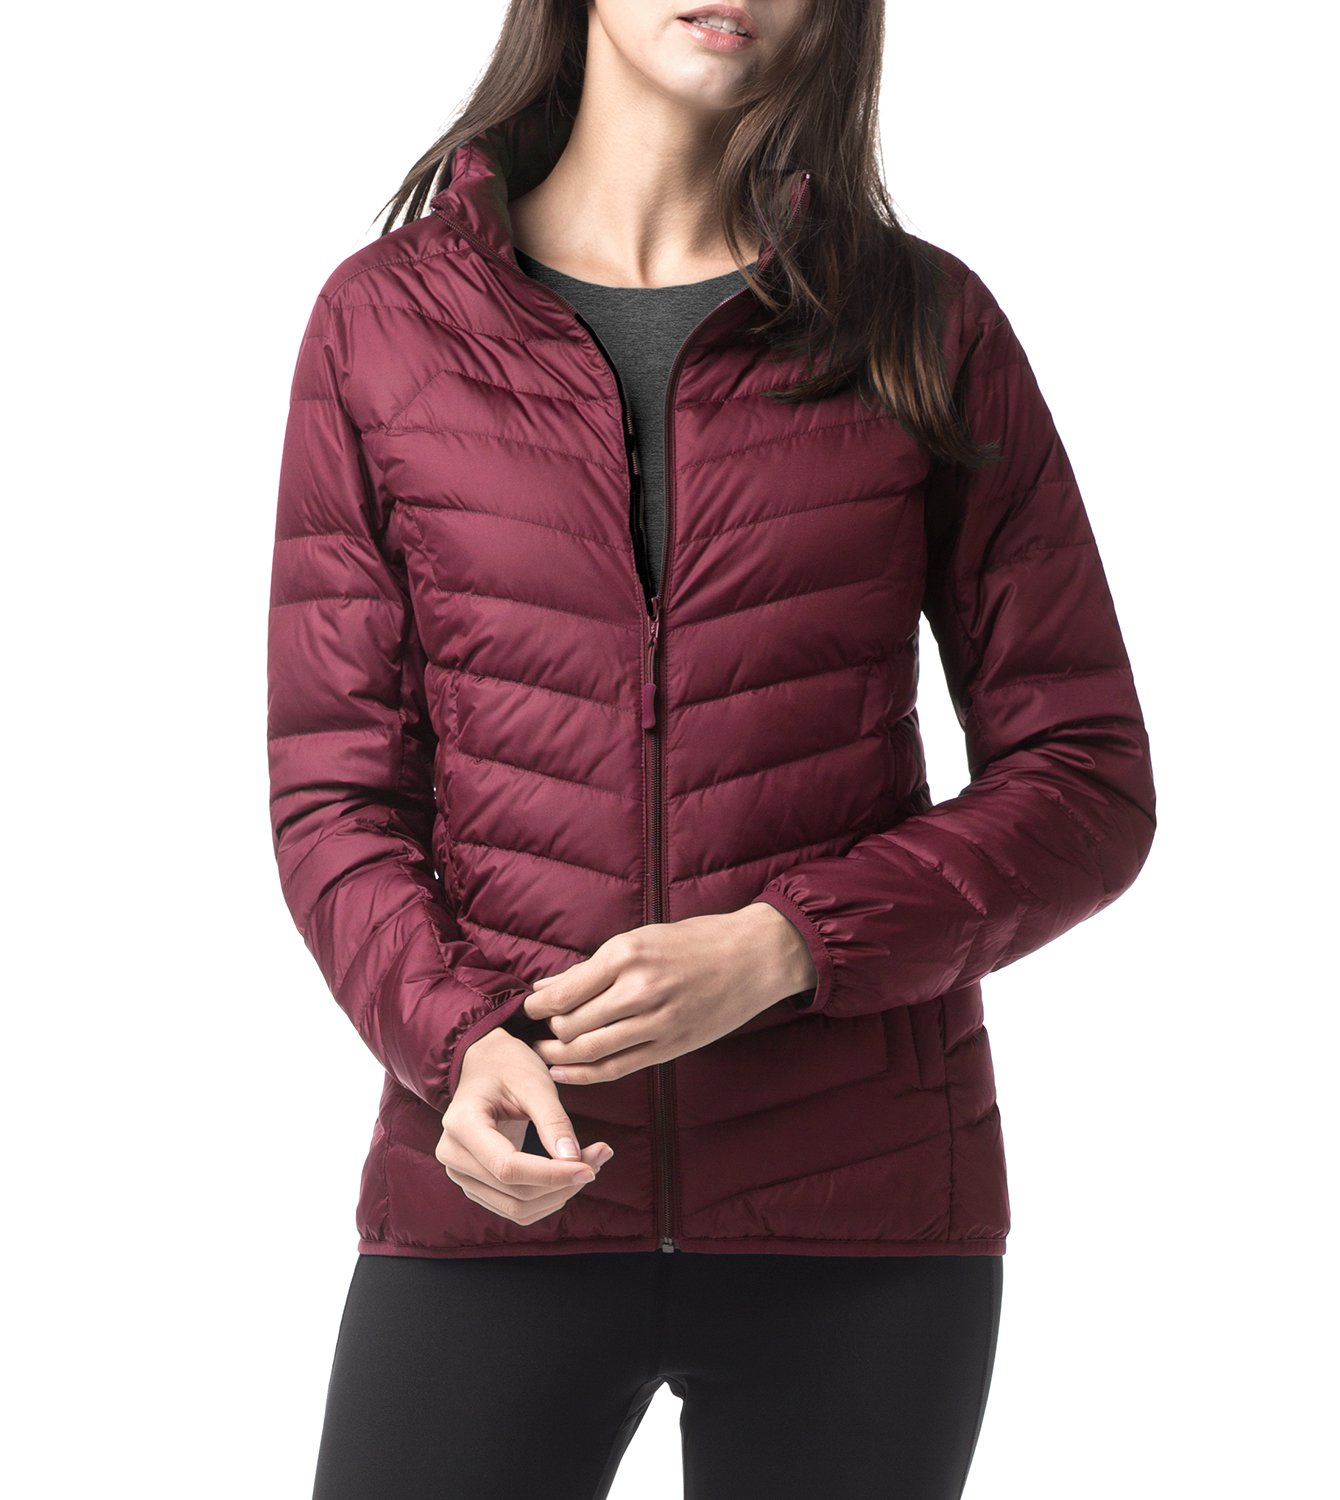 LAPASA Women's Water-Repellant Down Jacket (550 Feathers), Zipper + Interior Pockets, Lighteweight, Packable, Slim-Fit L18